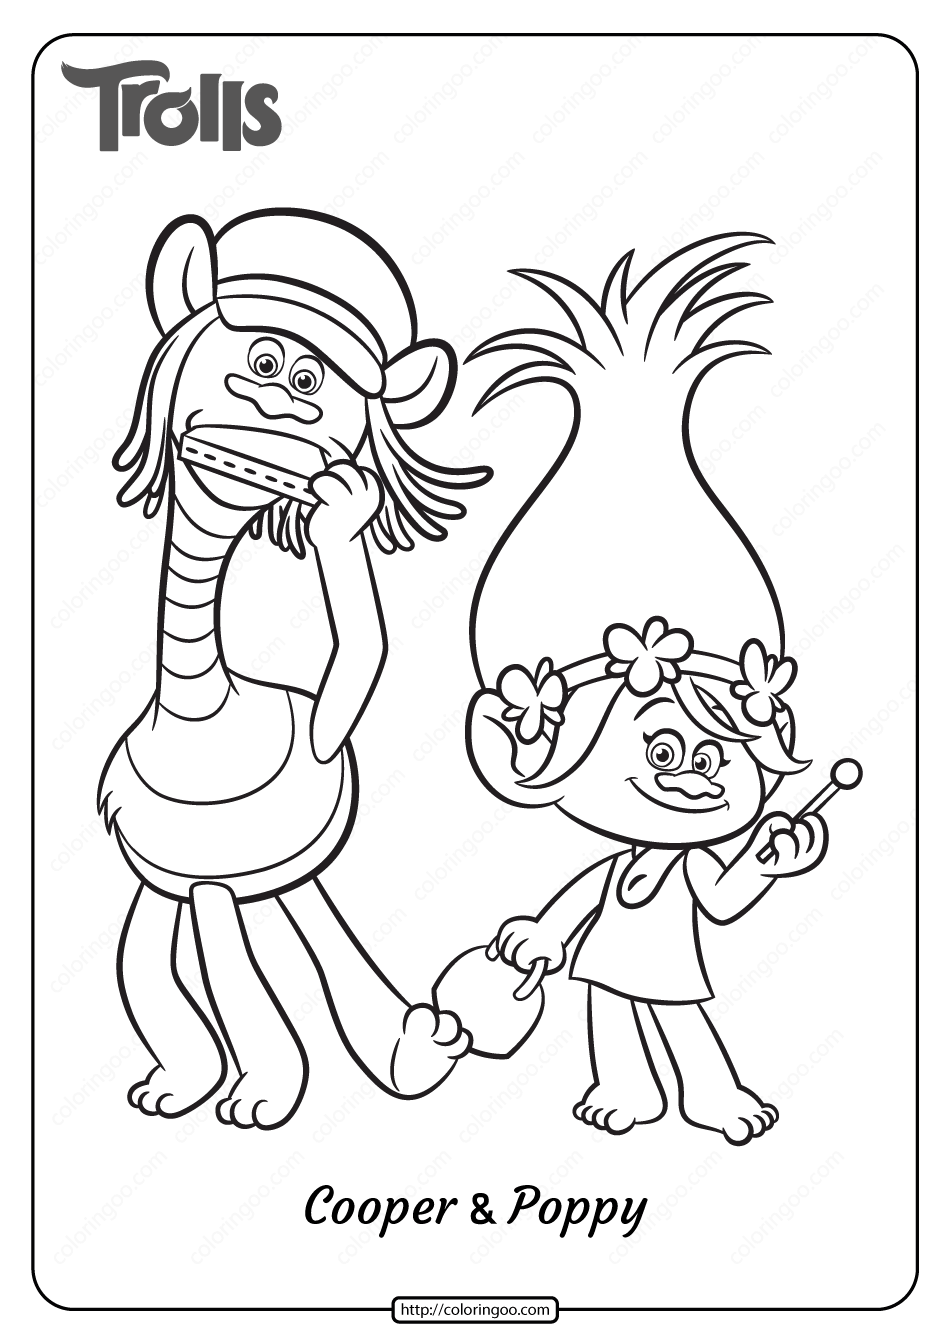 Printable Trolls Cooper and Poppy Coloring Page